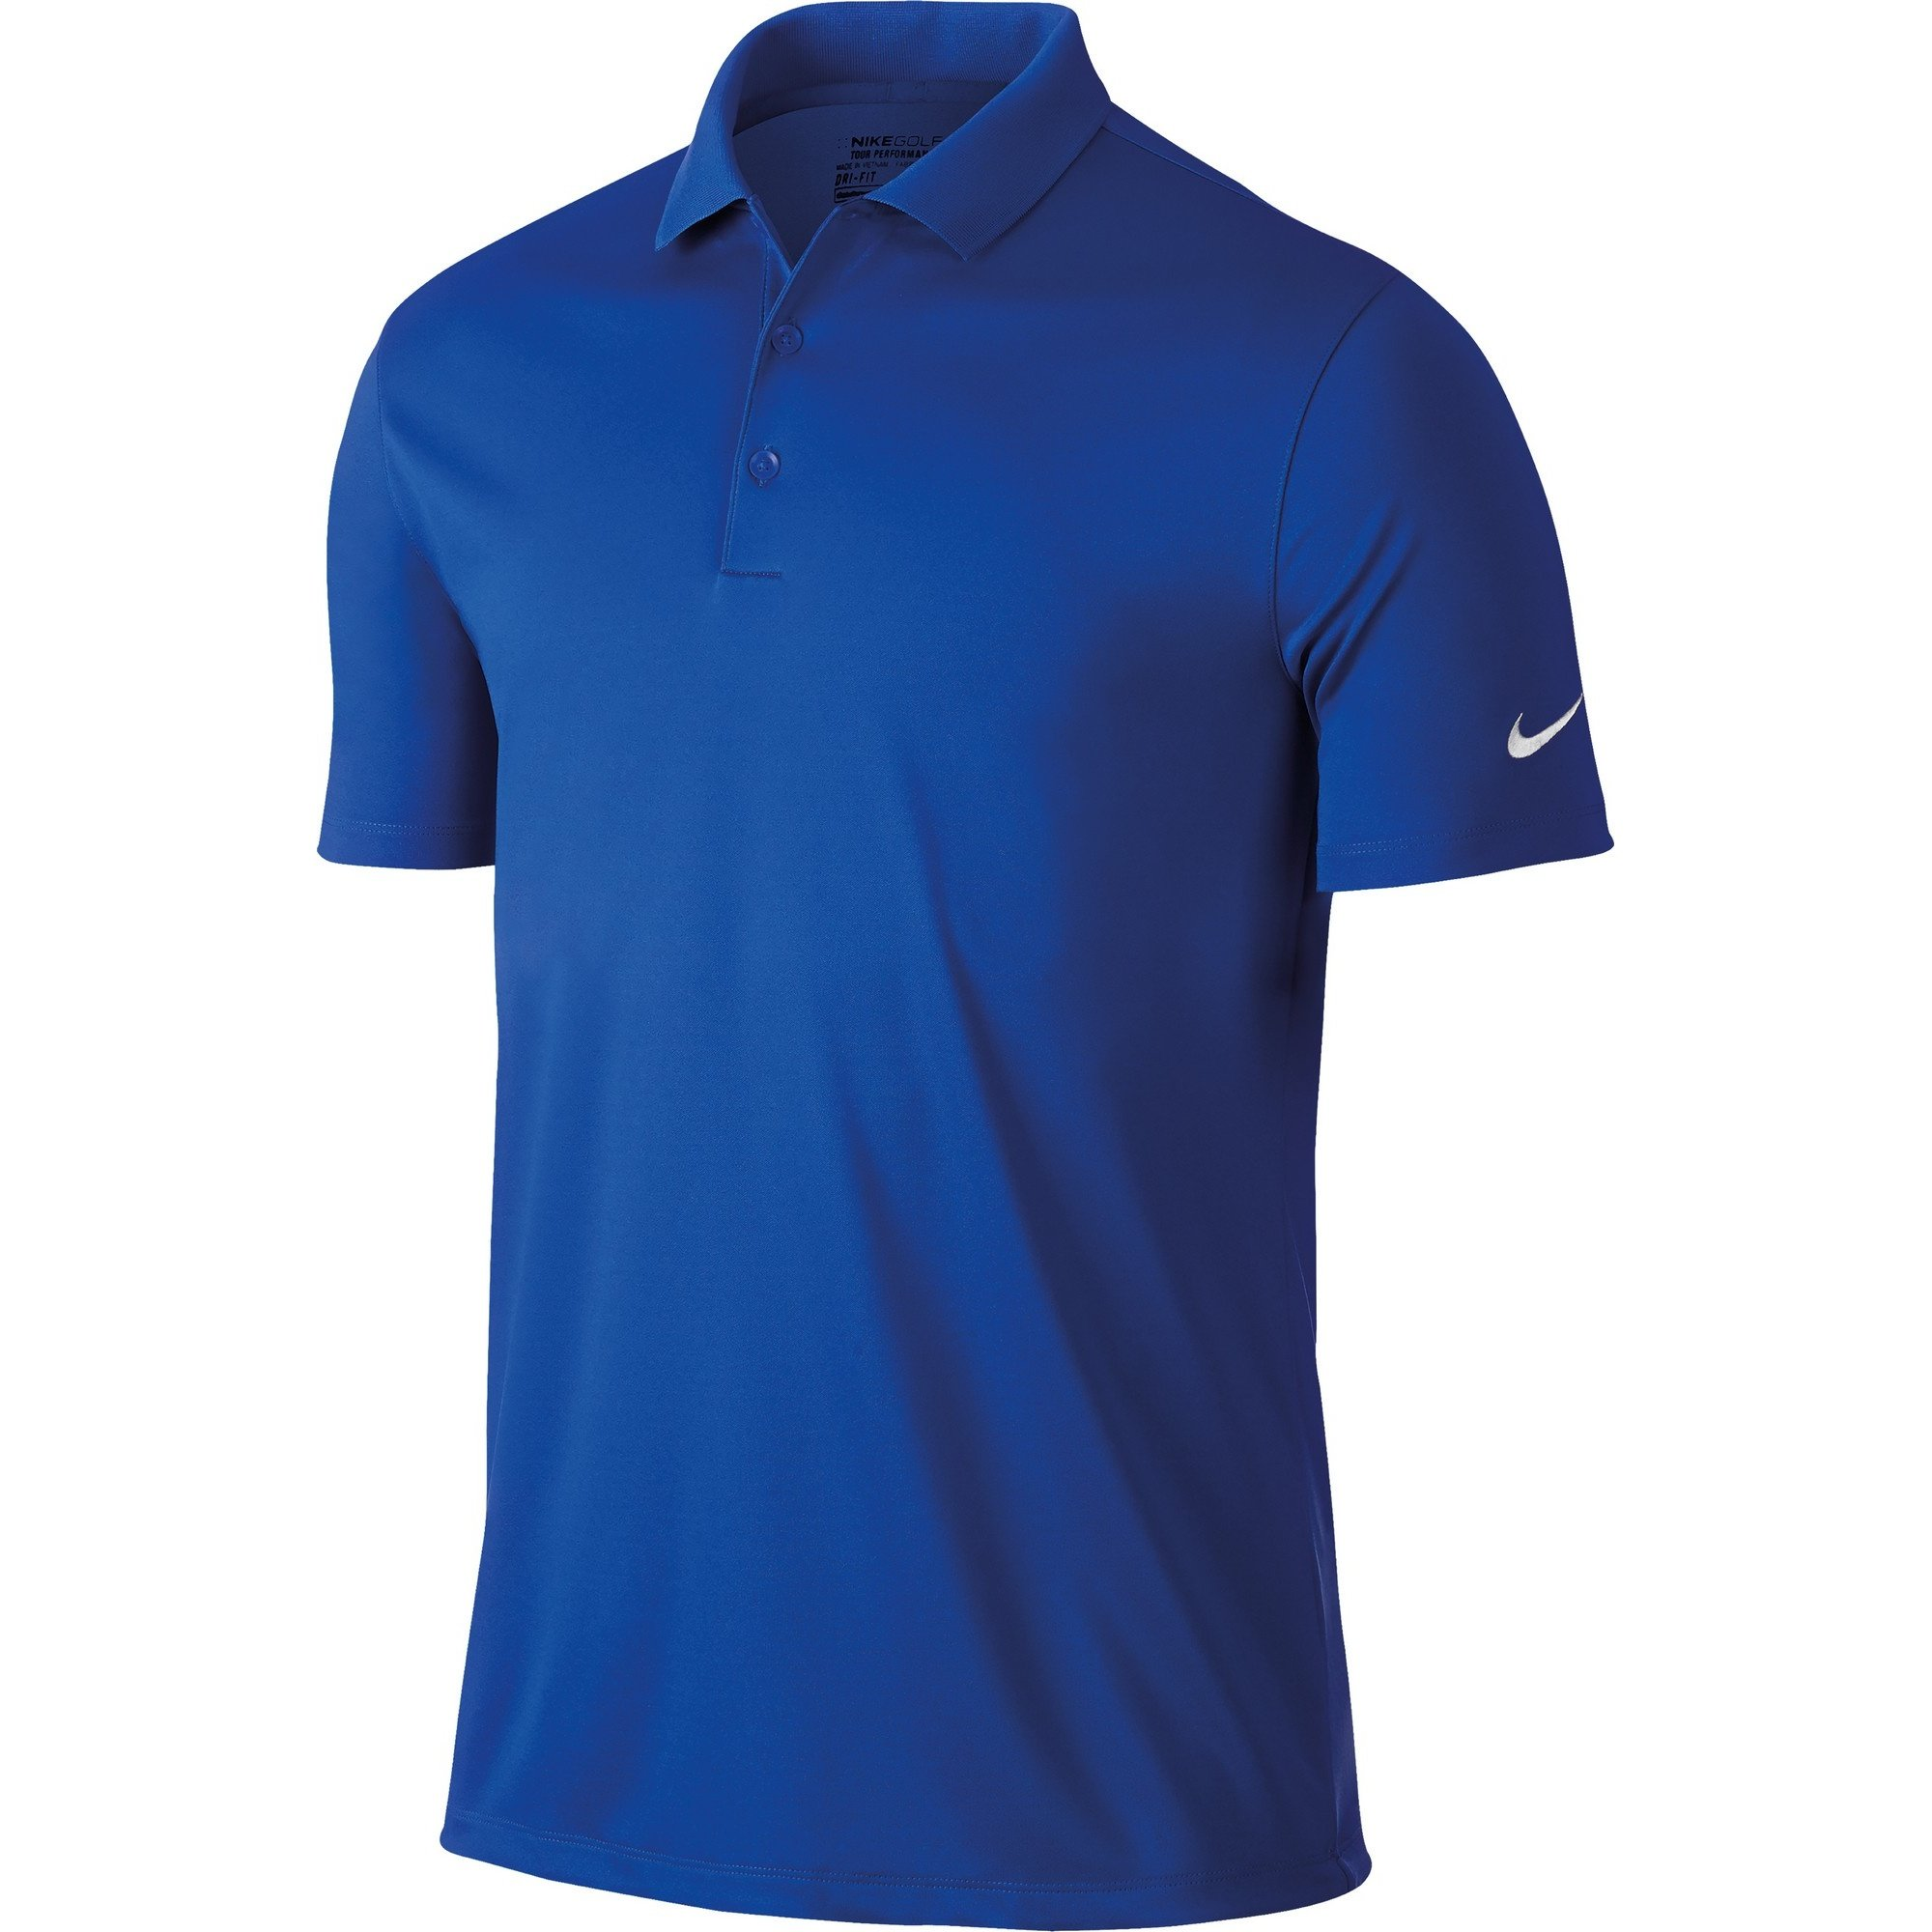 NIKE Men's Dry Victory Polo, Game Royal/White, XX-Large by Nike